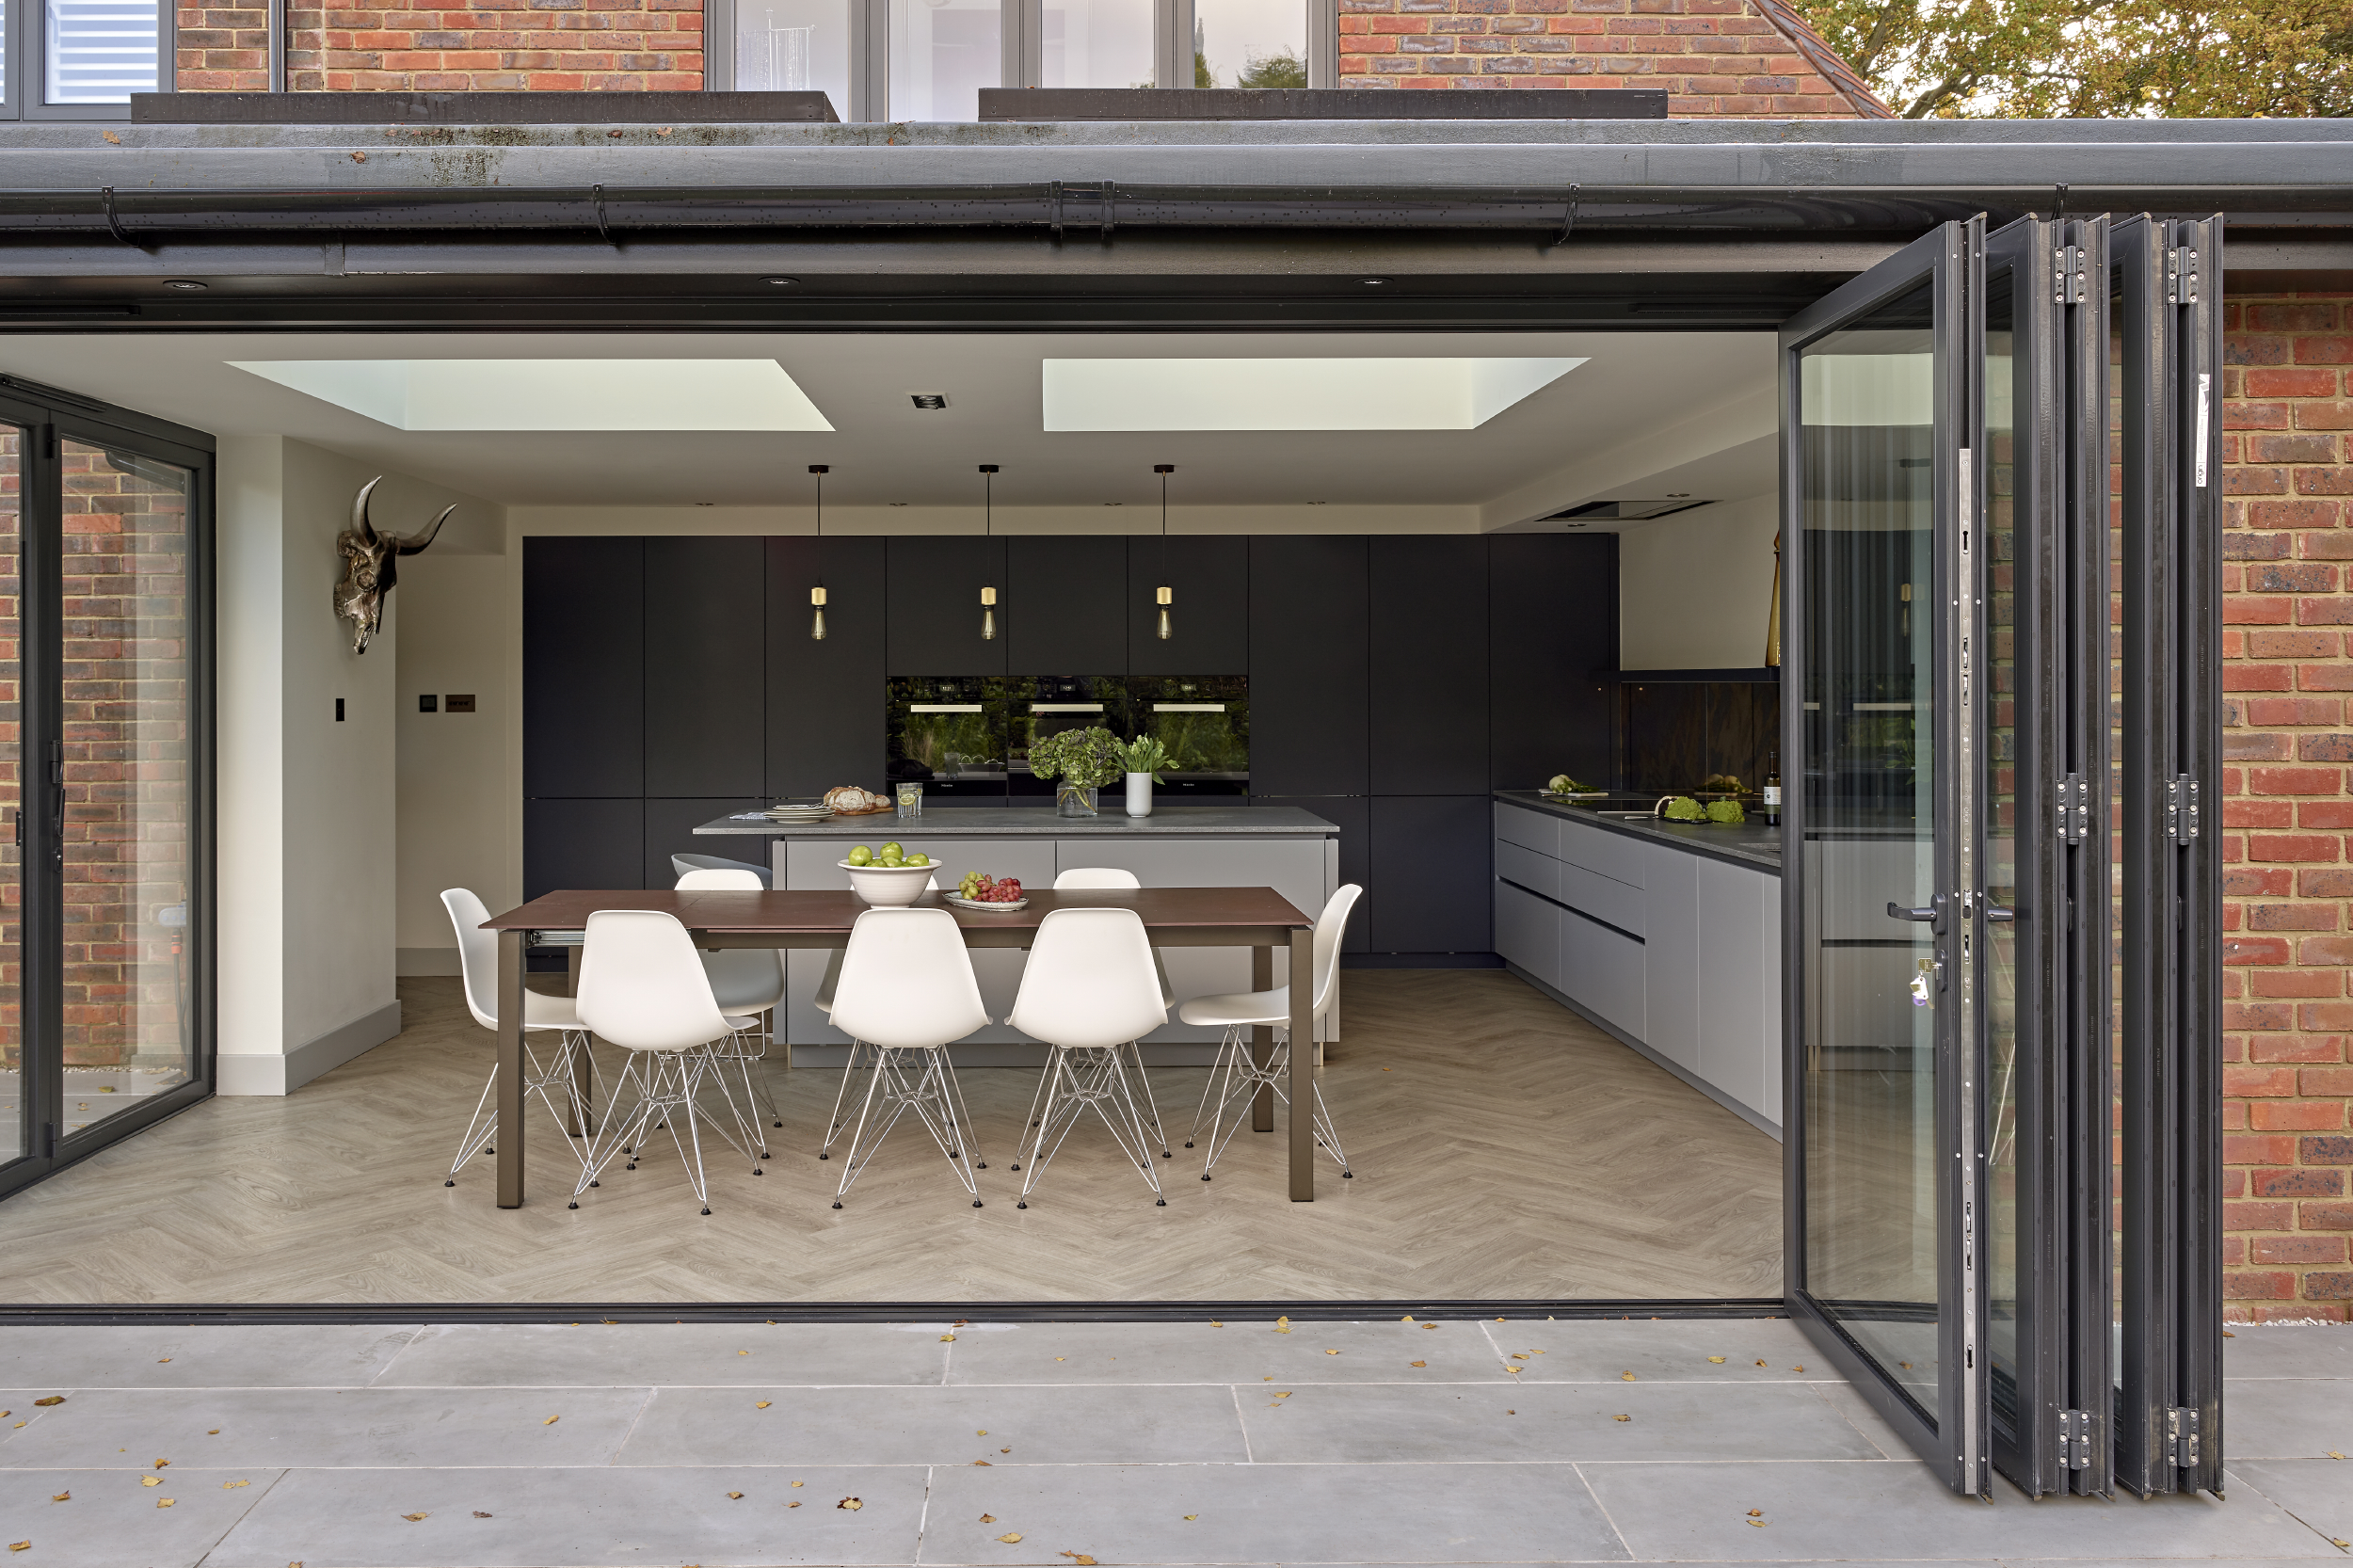 Home Sweet Home Carport Makeover Garage Exterior French Doors